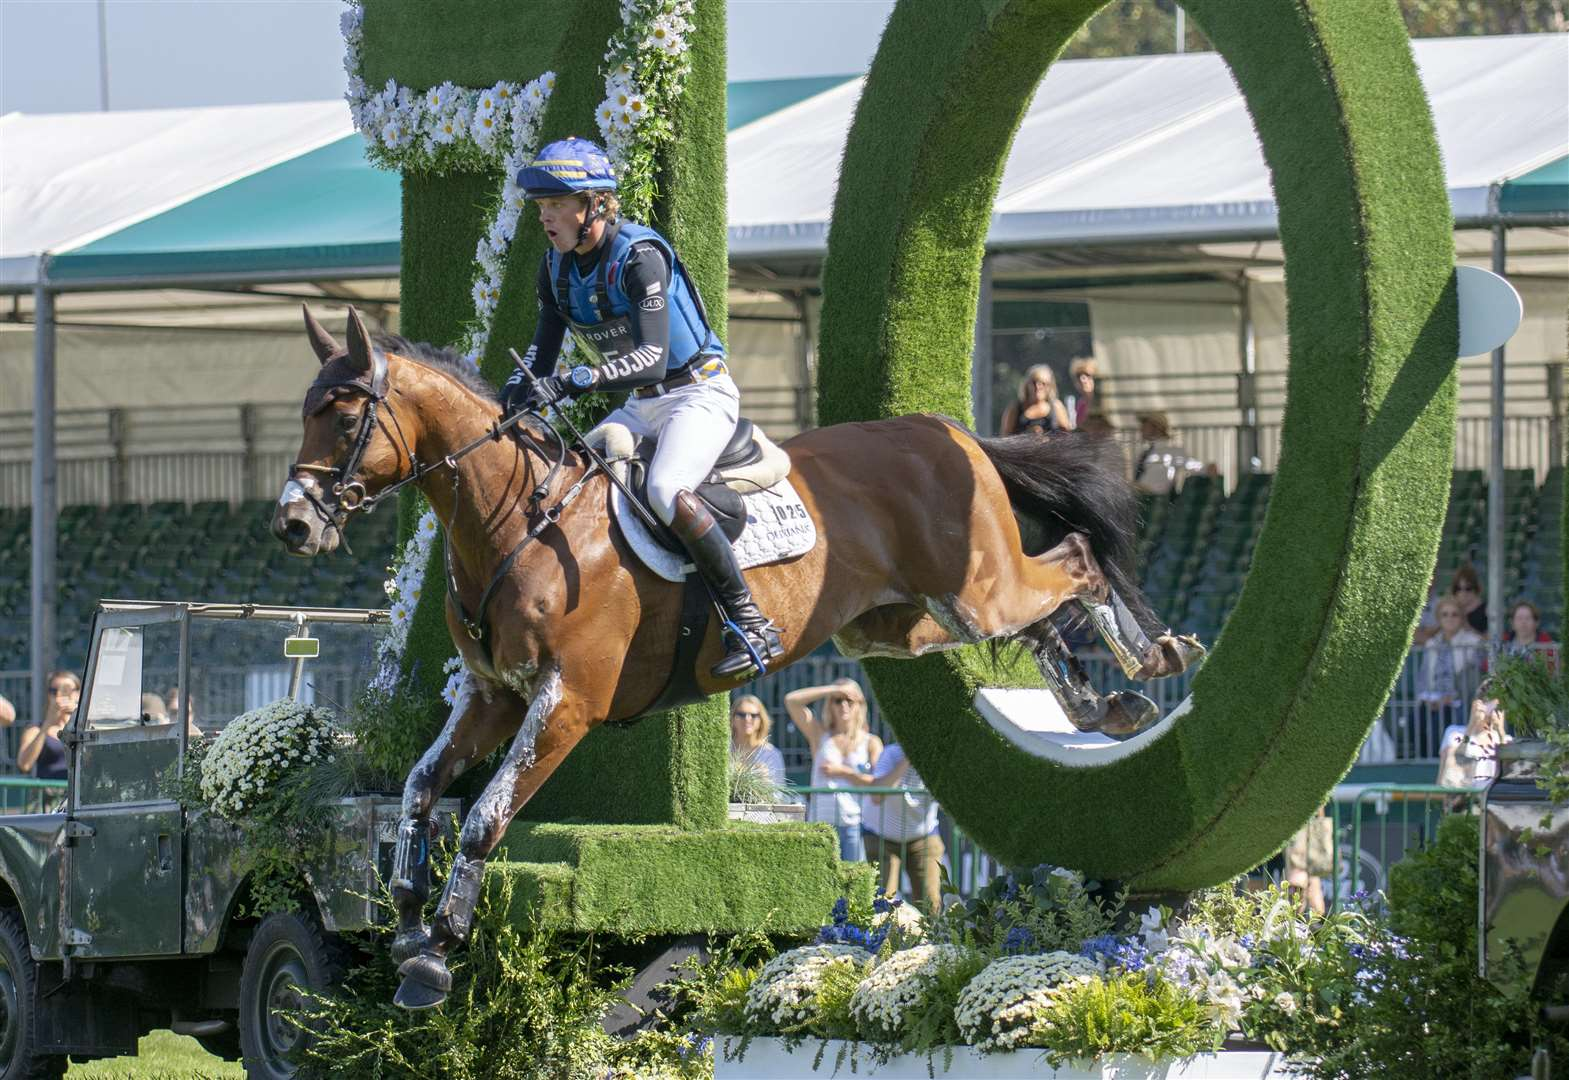 Burghley Horse Trials: Huge crowds attend outstanding competition